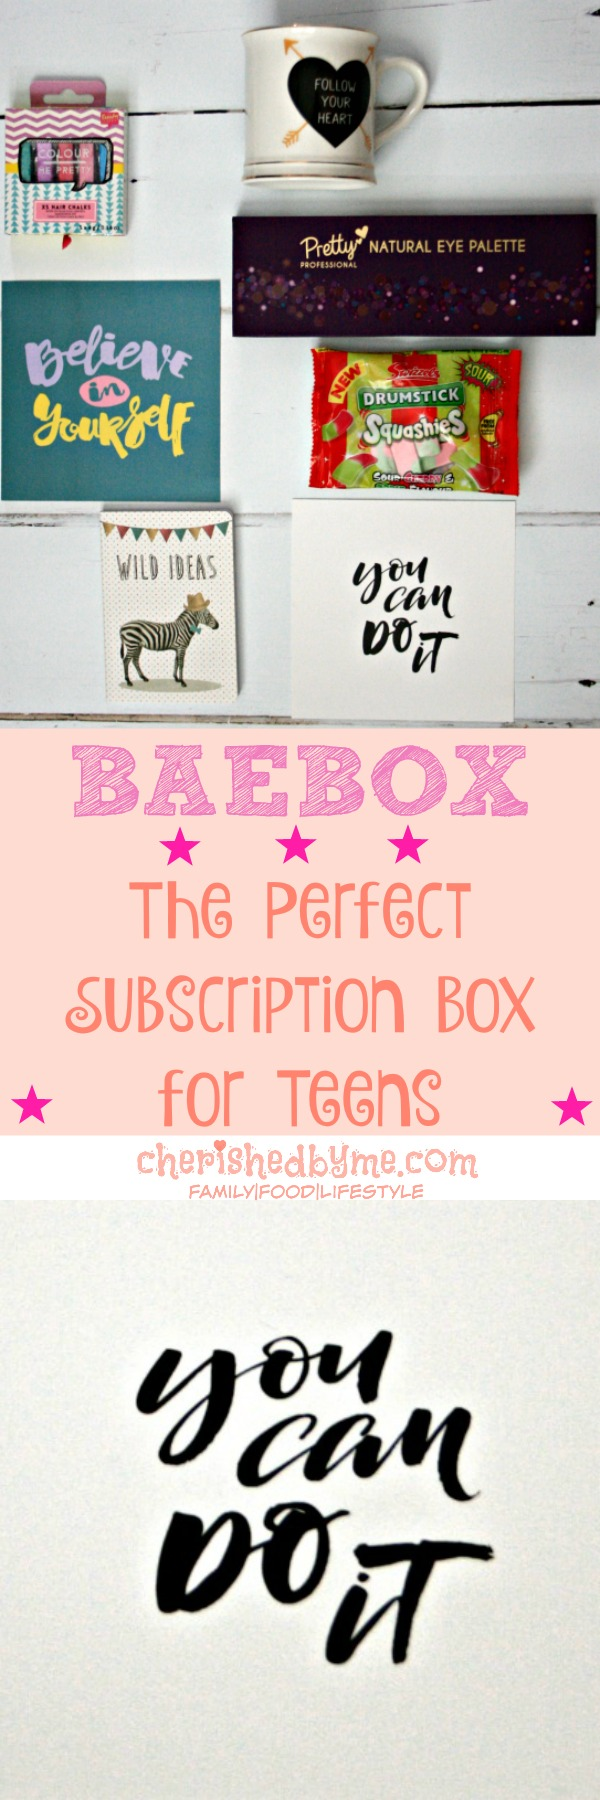 Subscription box for teens